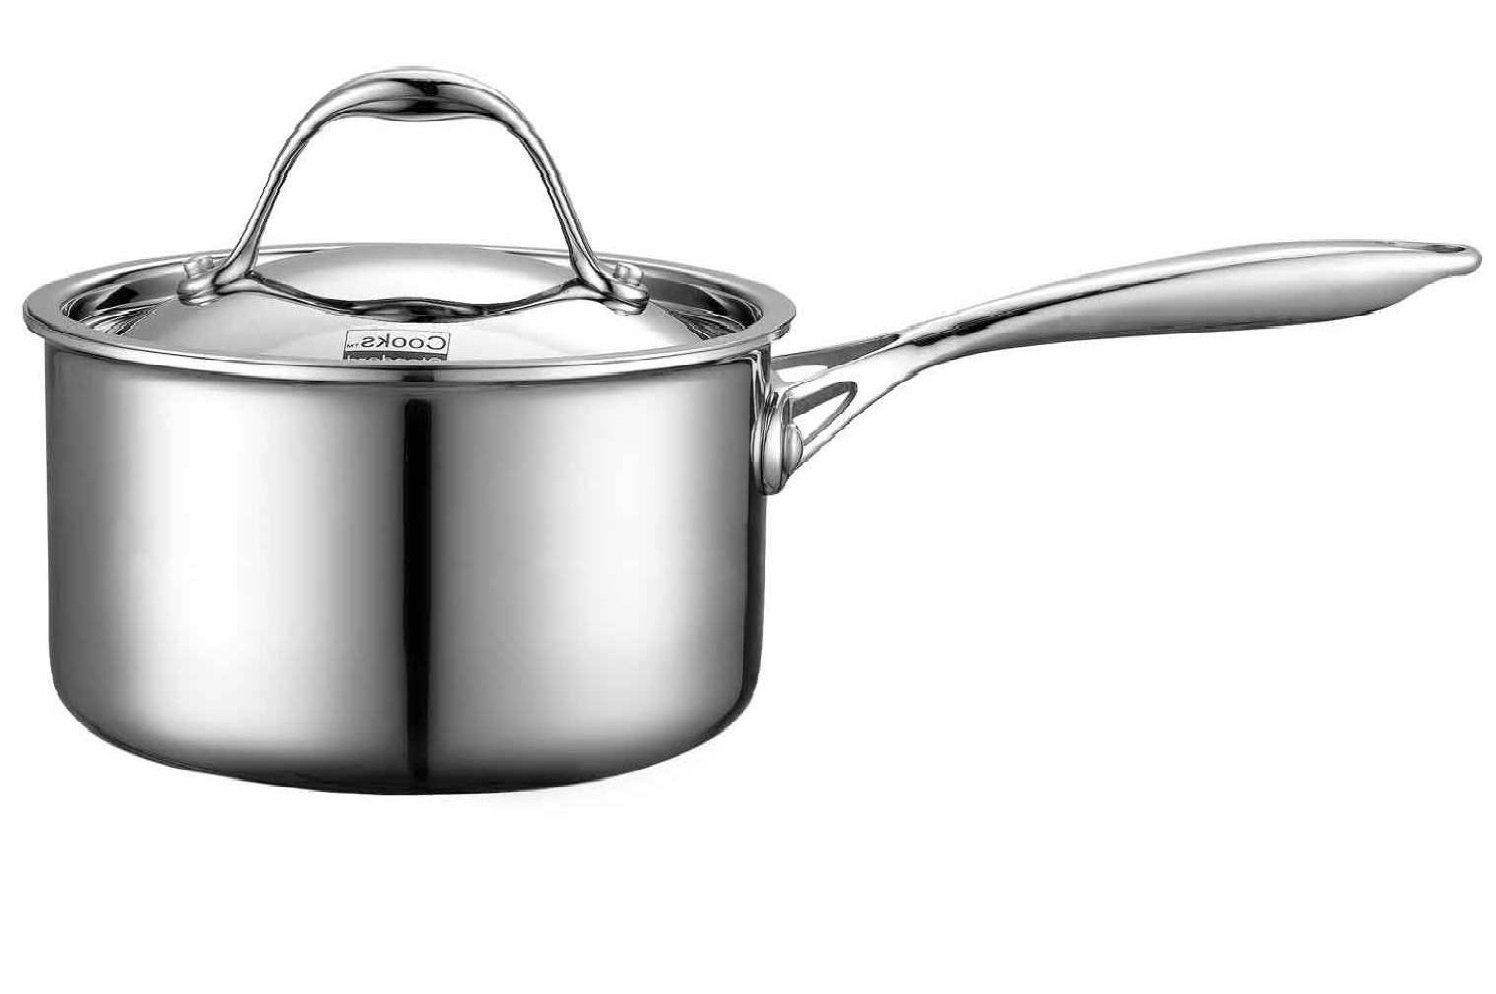 Cooks Standard Multi-Ply Clad Stainless-Steel 1-1/2-Quart Covered Sauce Pan